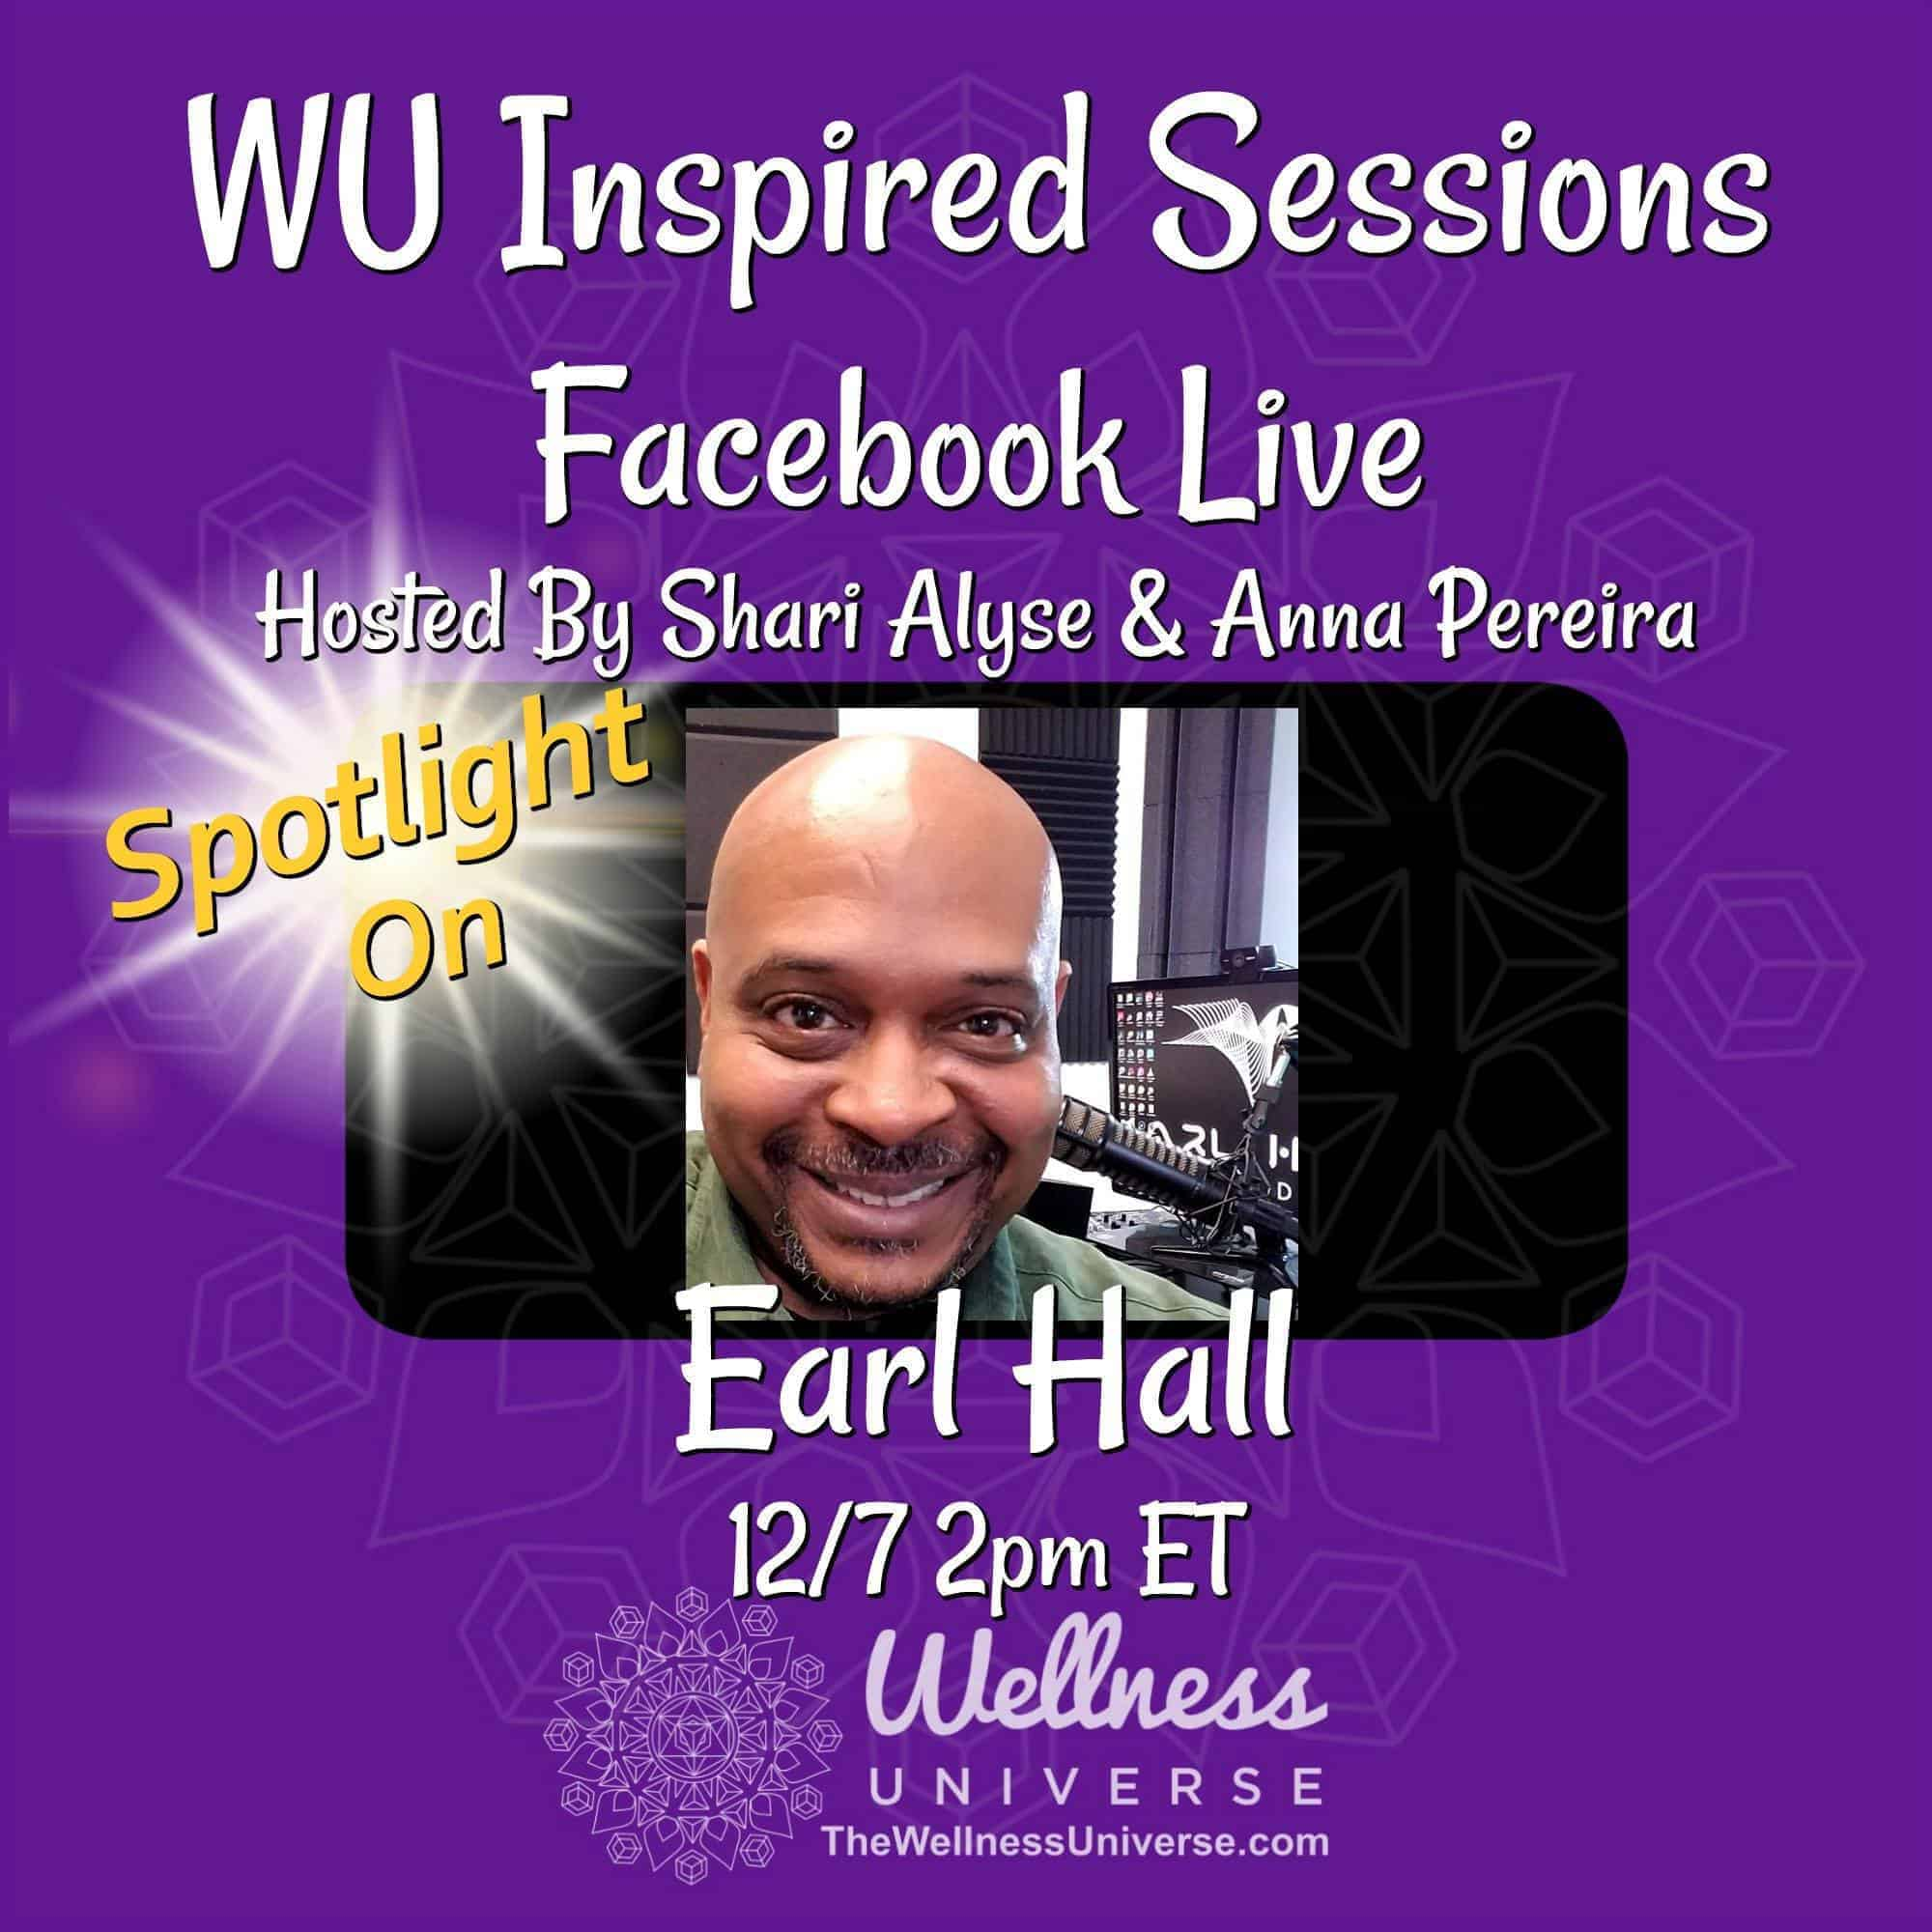 Have you ever wondered what your life purpose is, how to manifest it and align with it? Meet Mentor